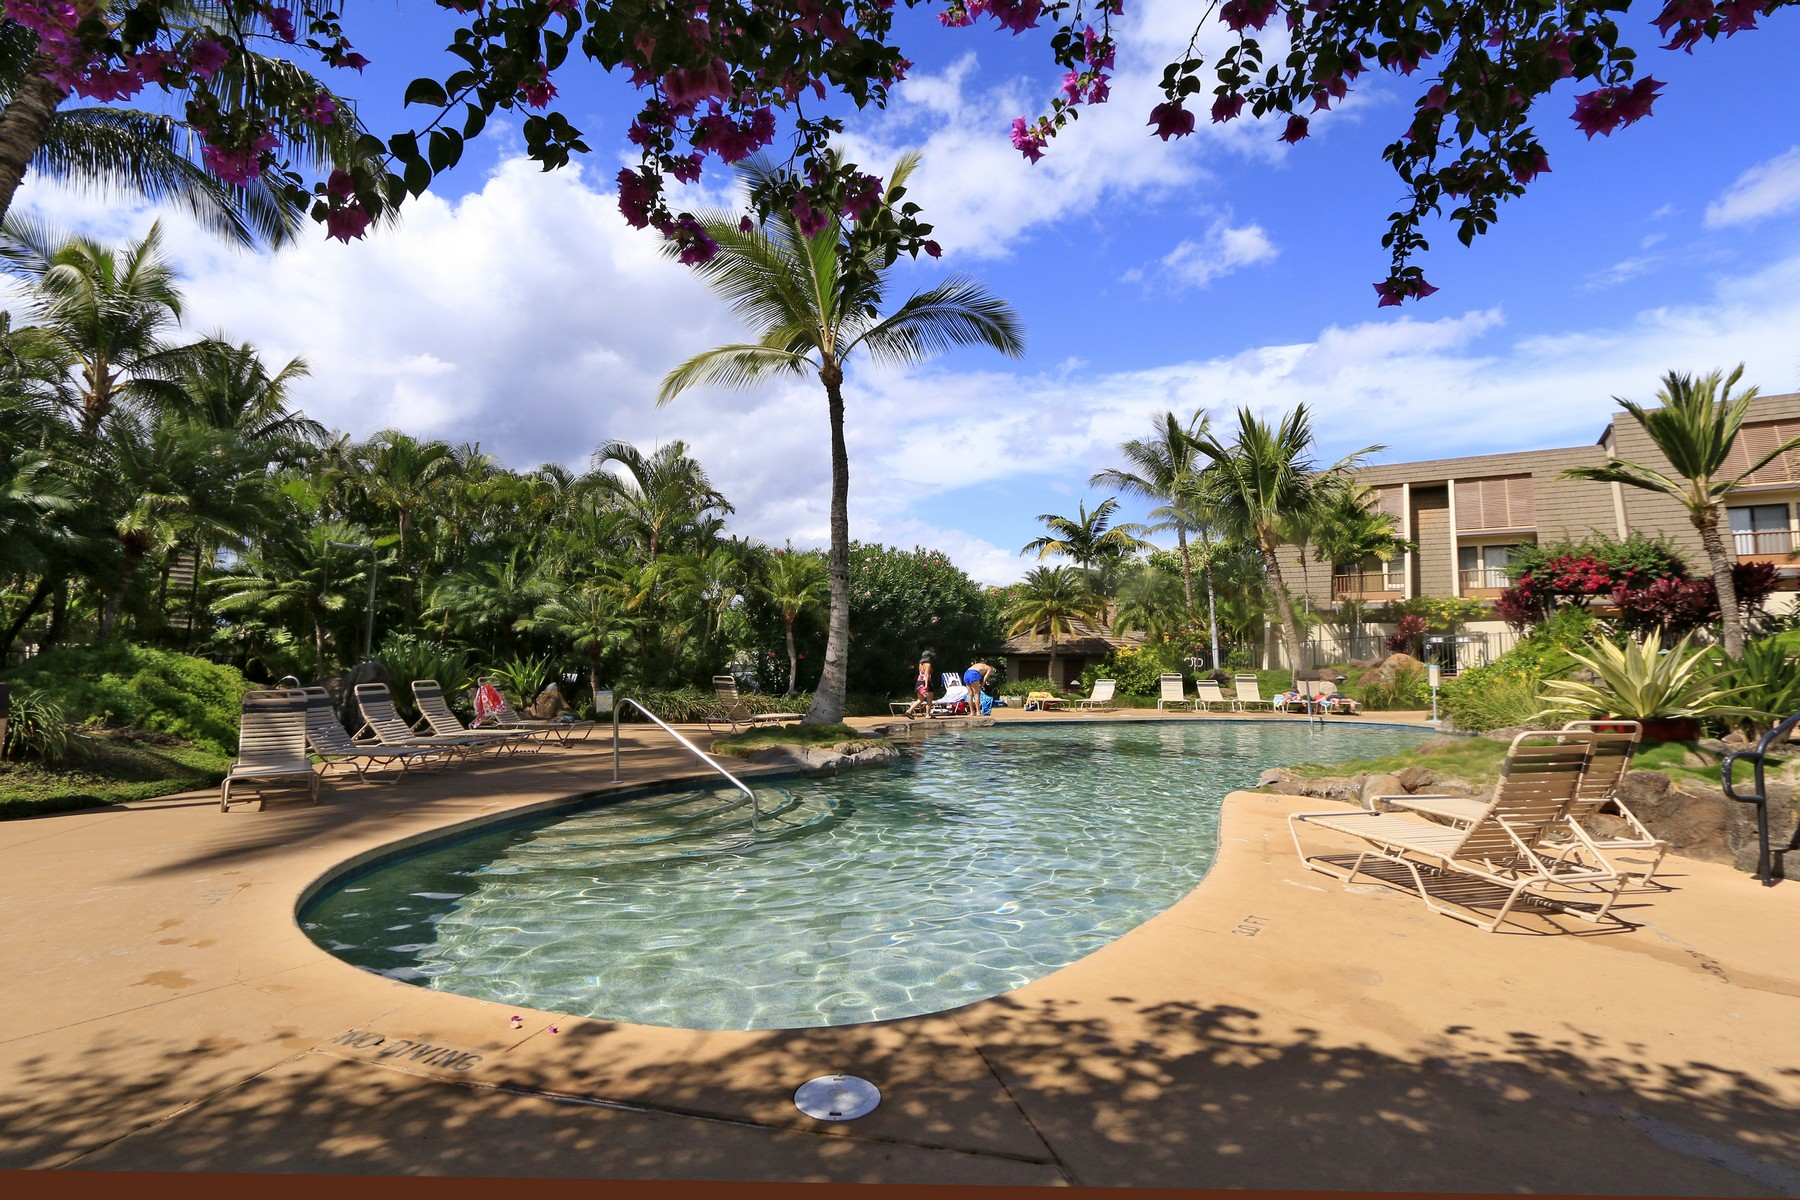 Condomínio para Venda às Private location in coveted complex & competitively priced 2777 South Kihei Road, Maui Kamaole D112 Kihei, Havaí 96753 Estados Unidos